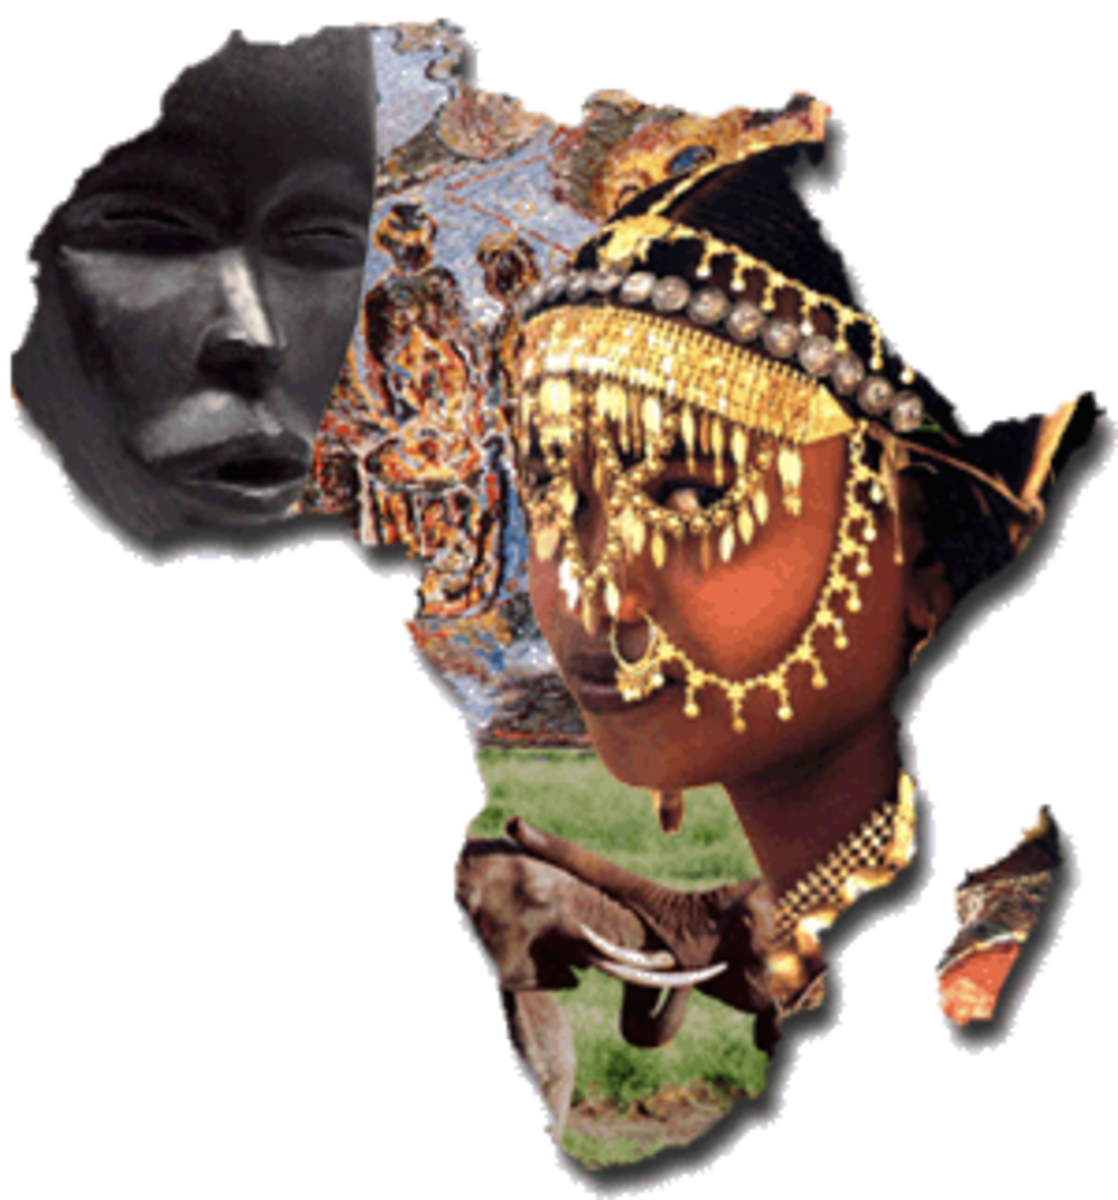 Africa is the Cradle and origin of Man.